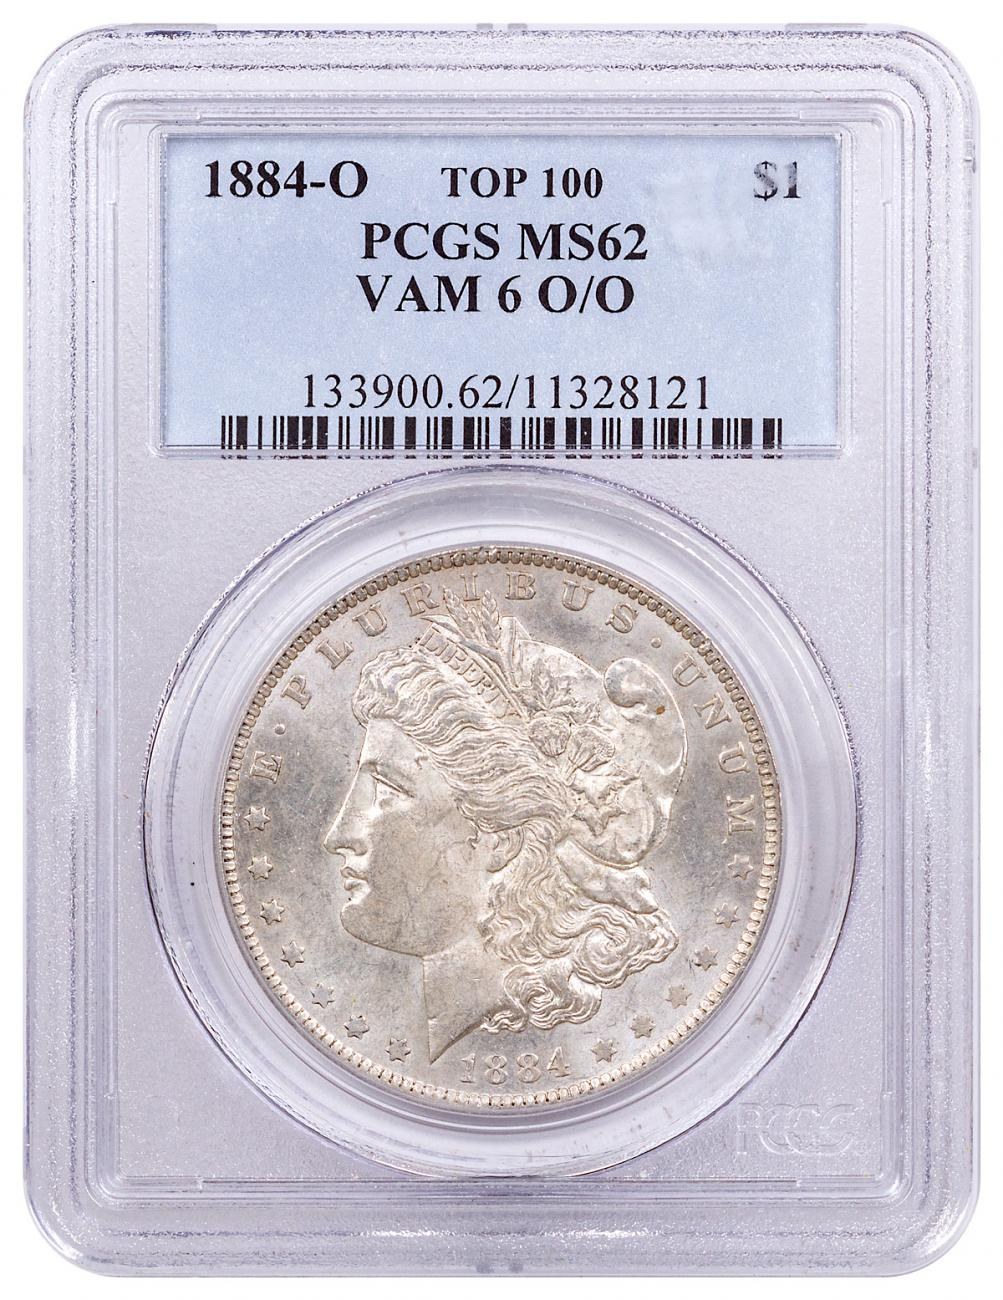 1884-O Morgan Silver Dollar Top 100 PCGS MS62 VAM 6 O/O